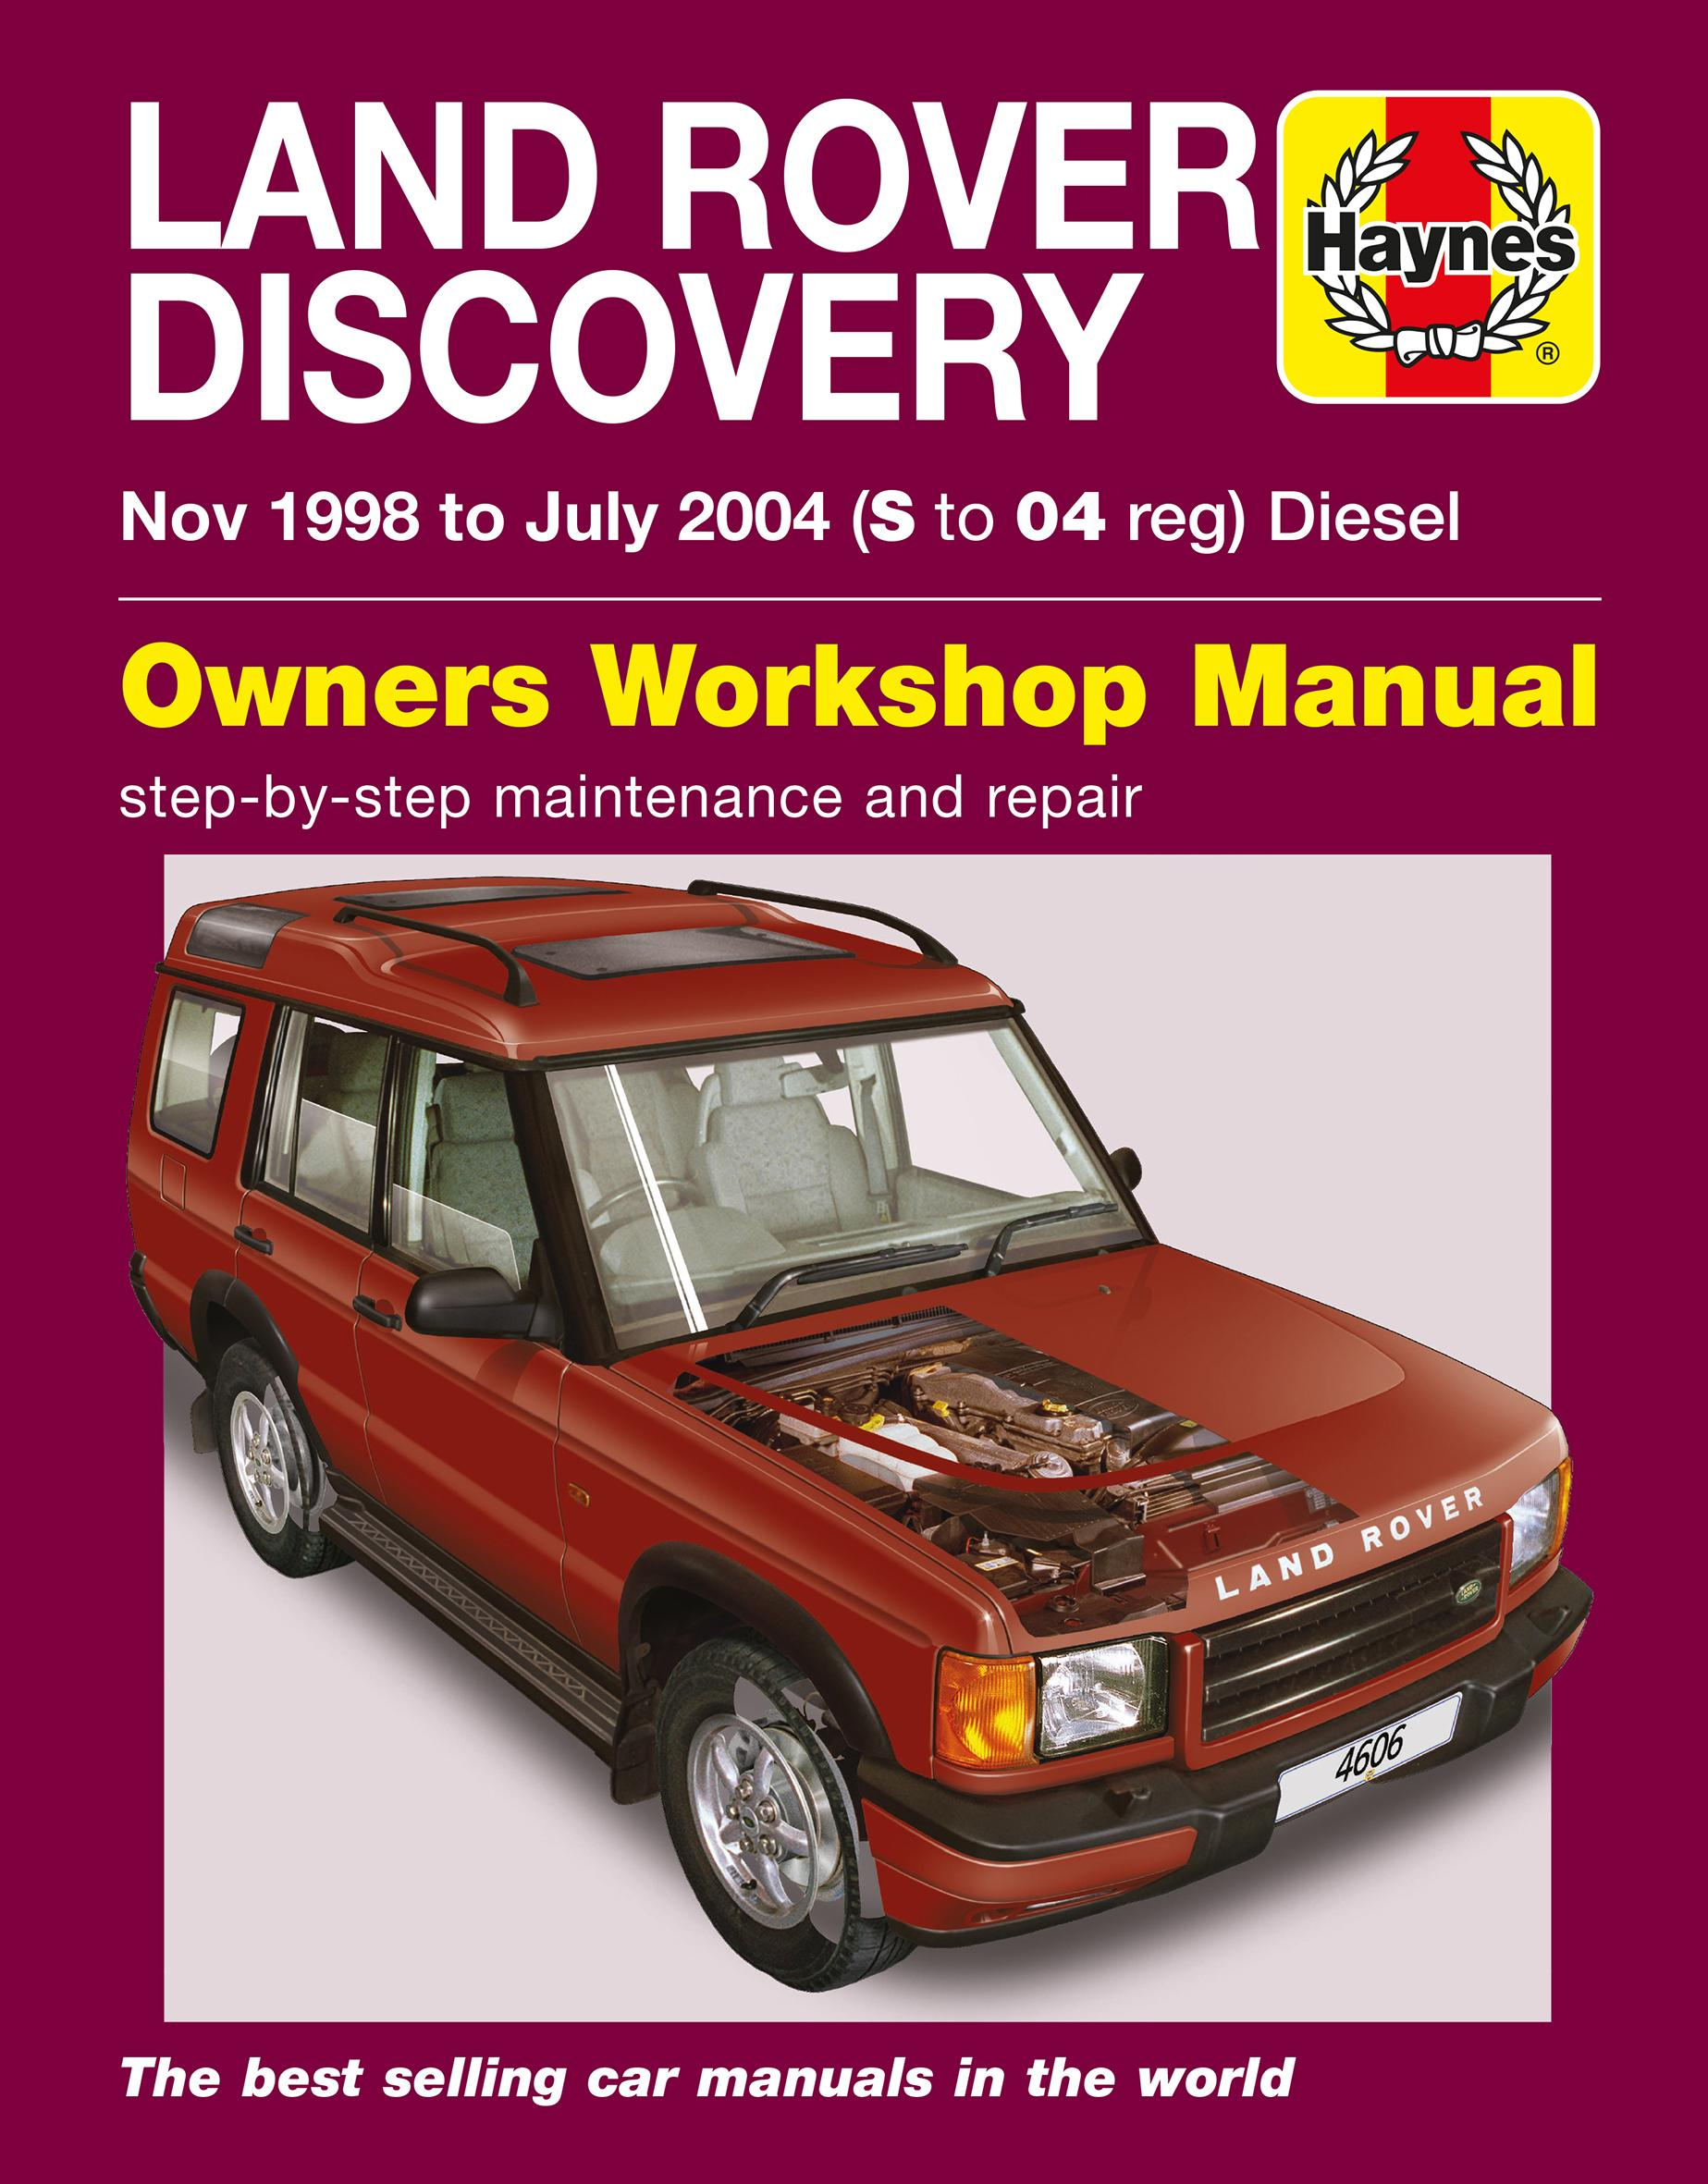 Land rover discovery full service repair manual pdf array haynes land rover discovery nov 98 rh halfords com fandeluxe Gallery